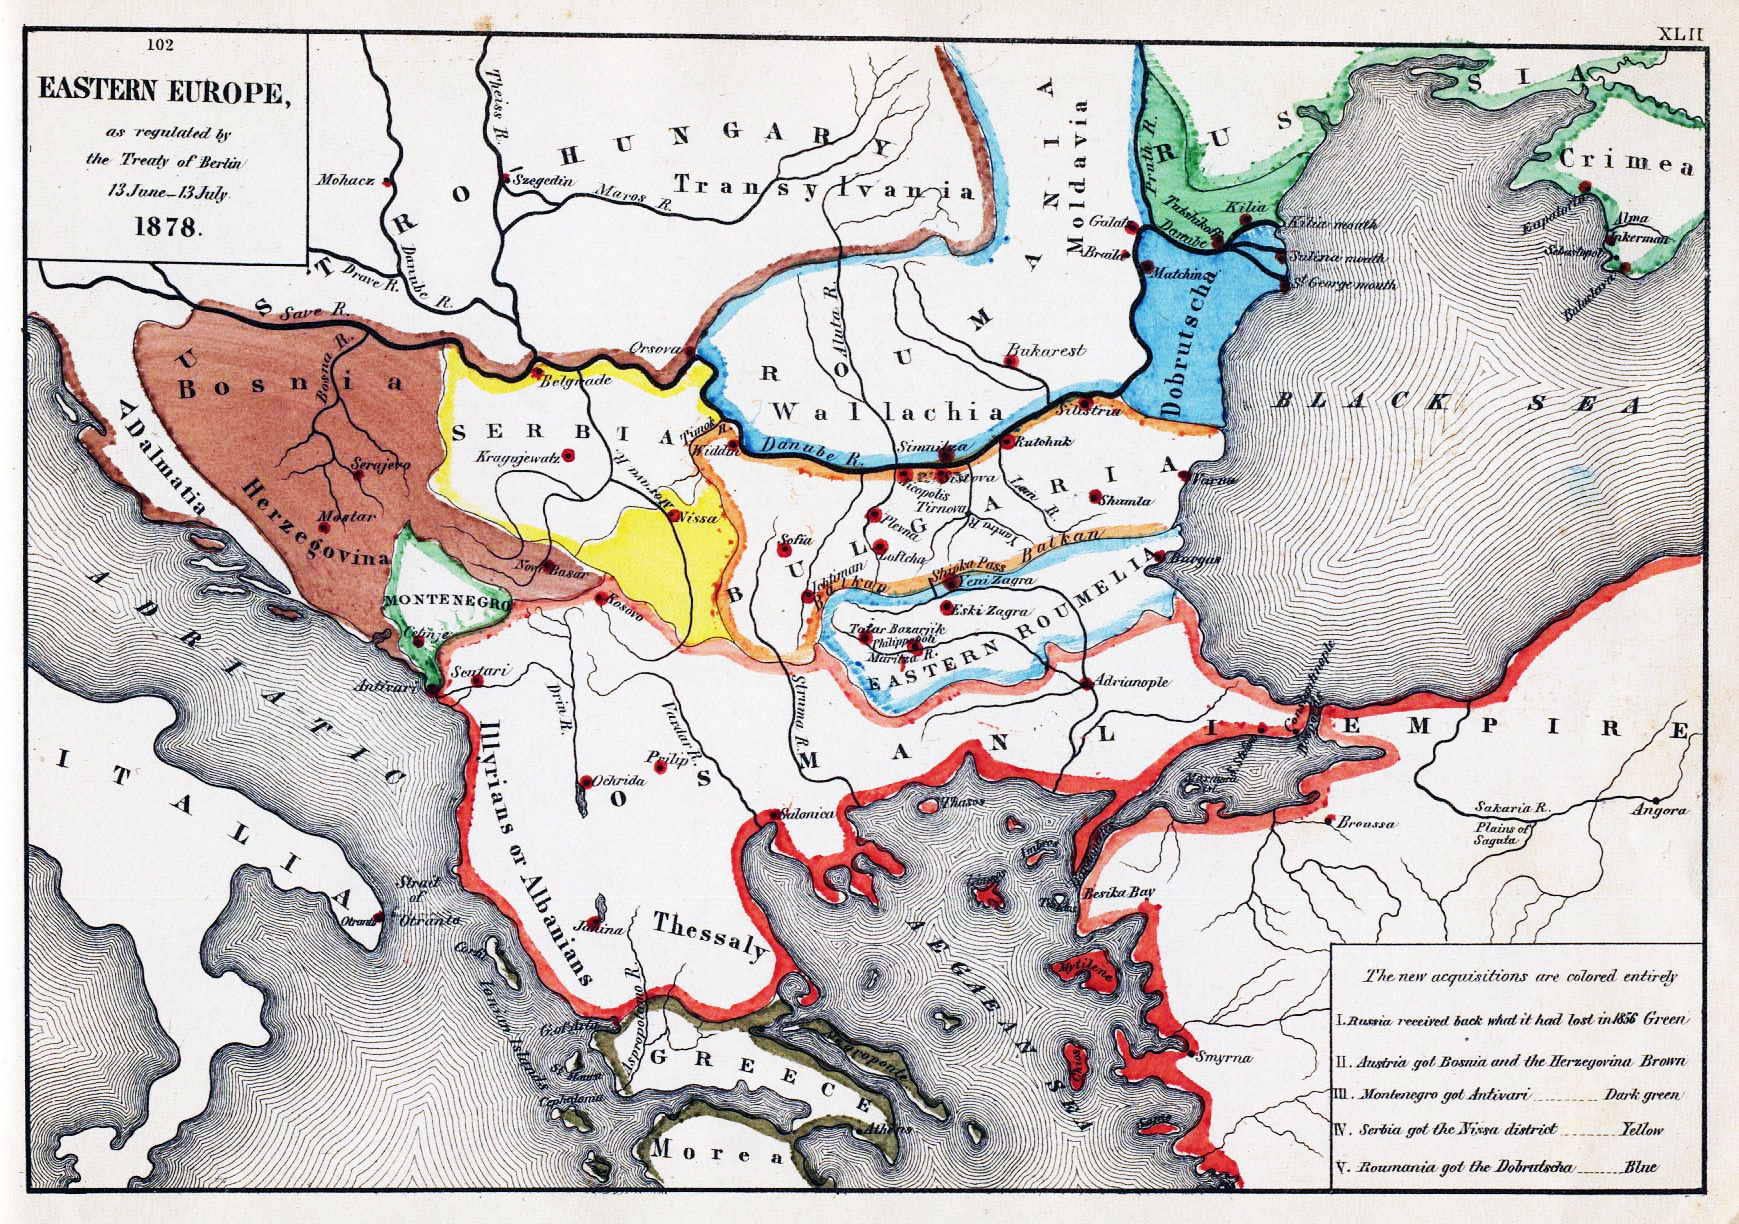 Southeastern Europe after the Congress of Berlin